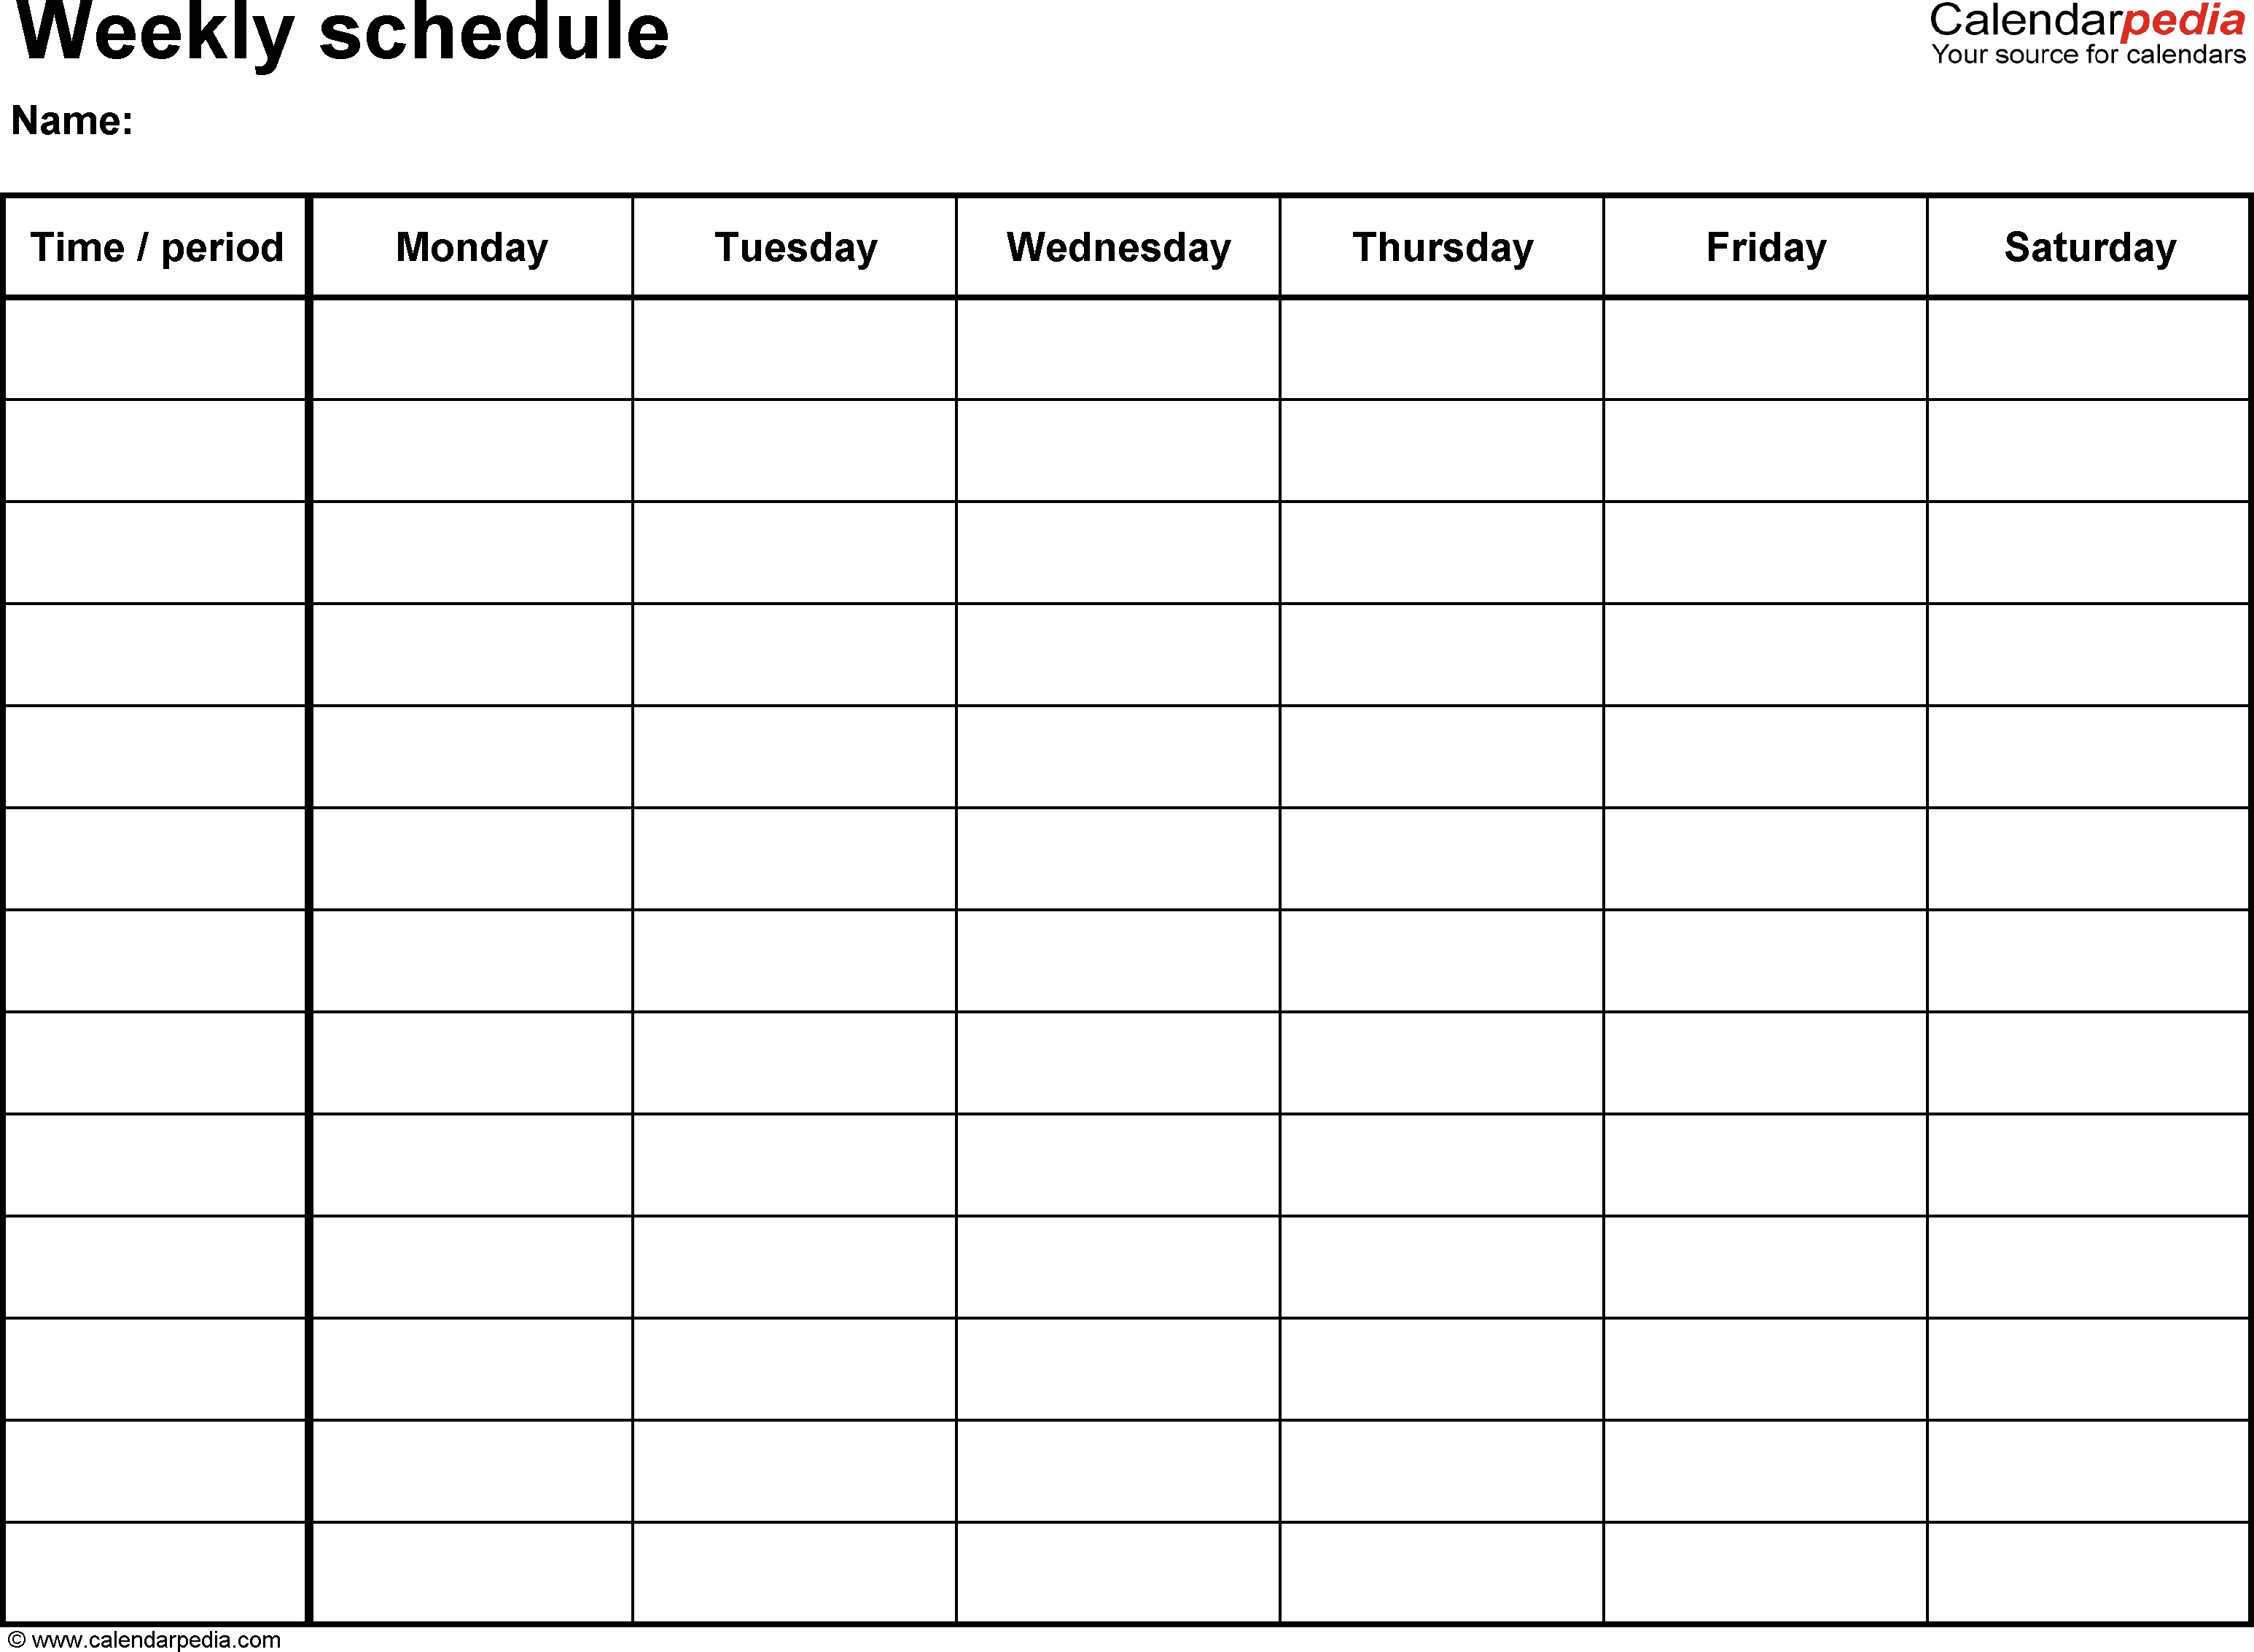 Free Weekly Schedule Templates For Word - 18 Templates within Weekly Monday Through Friday Appointment